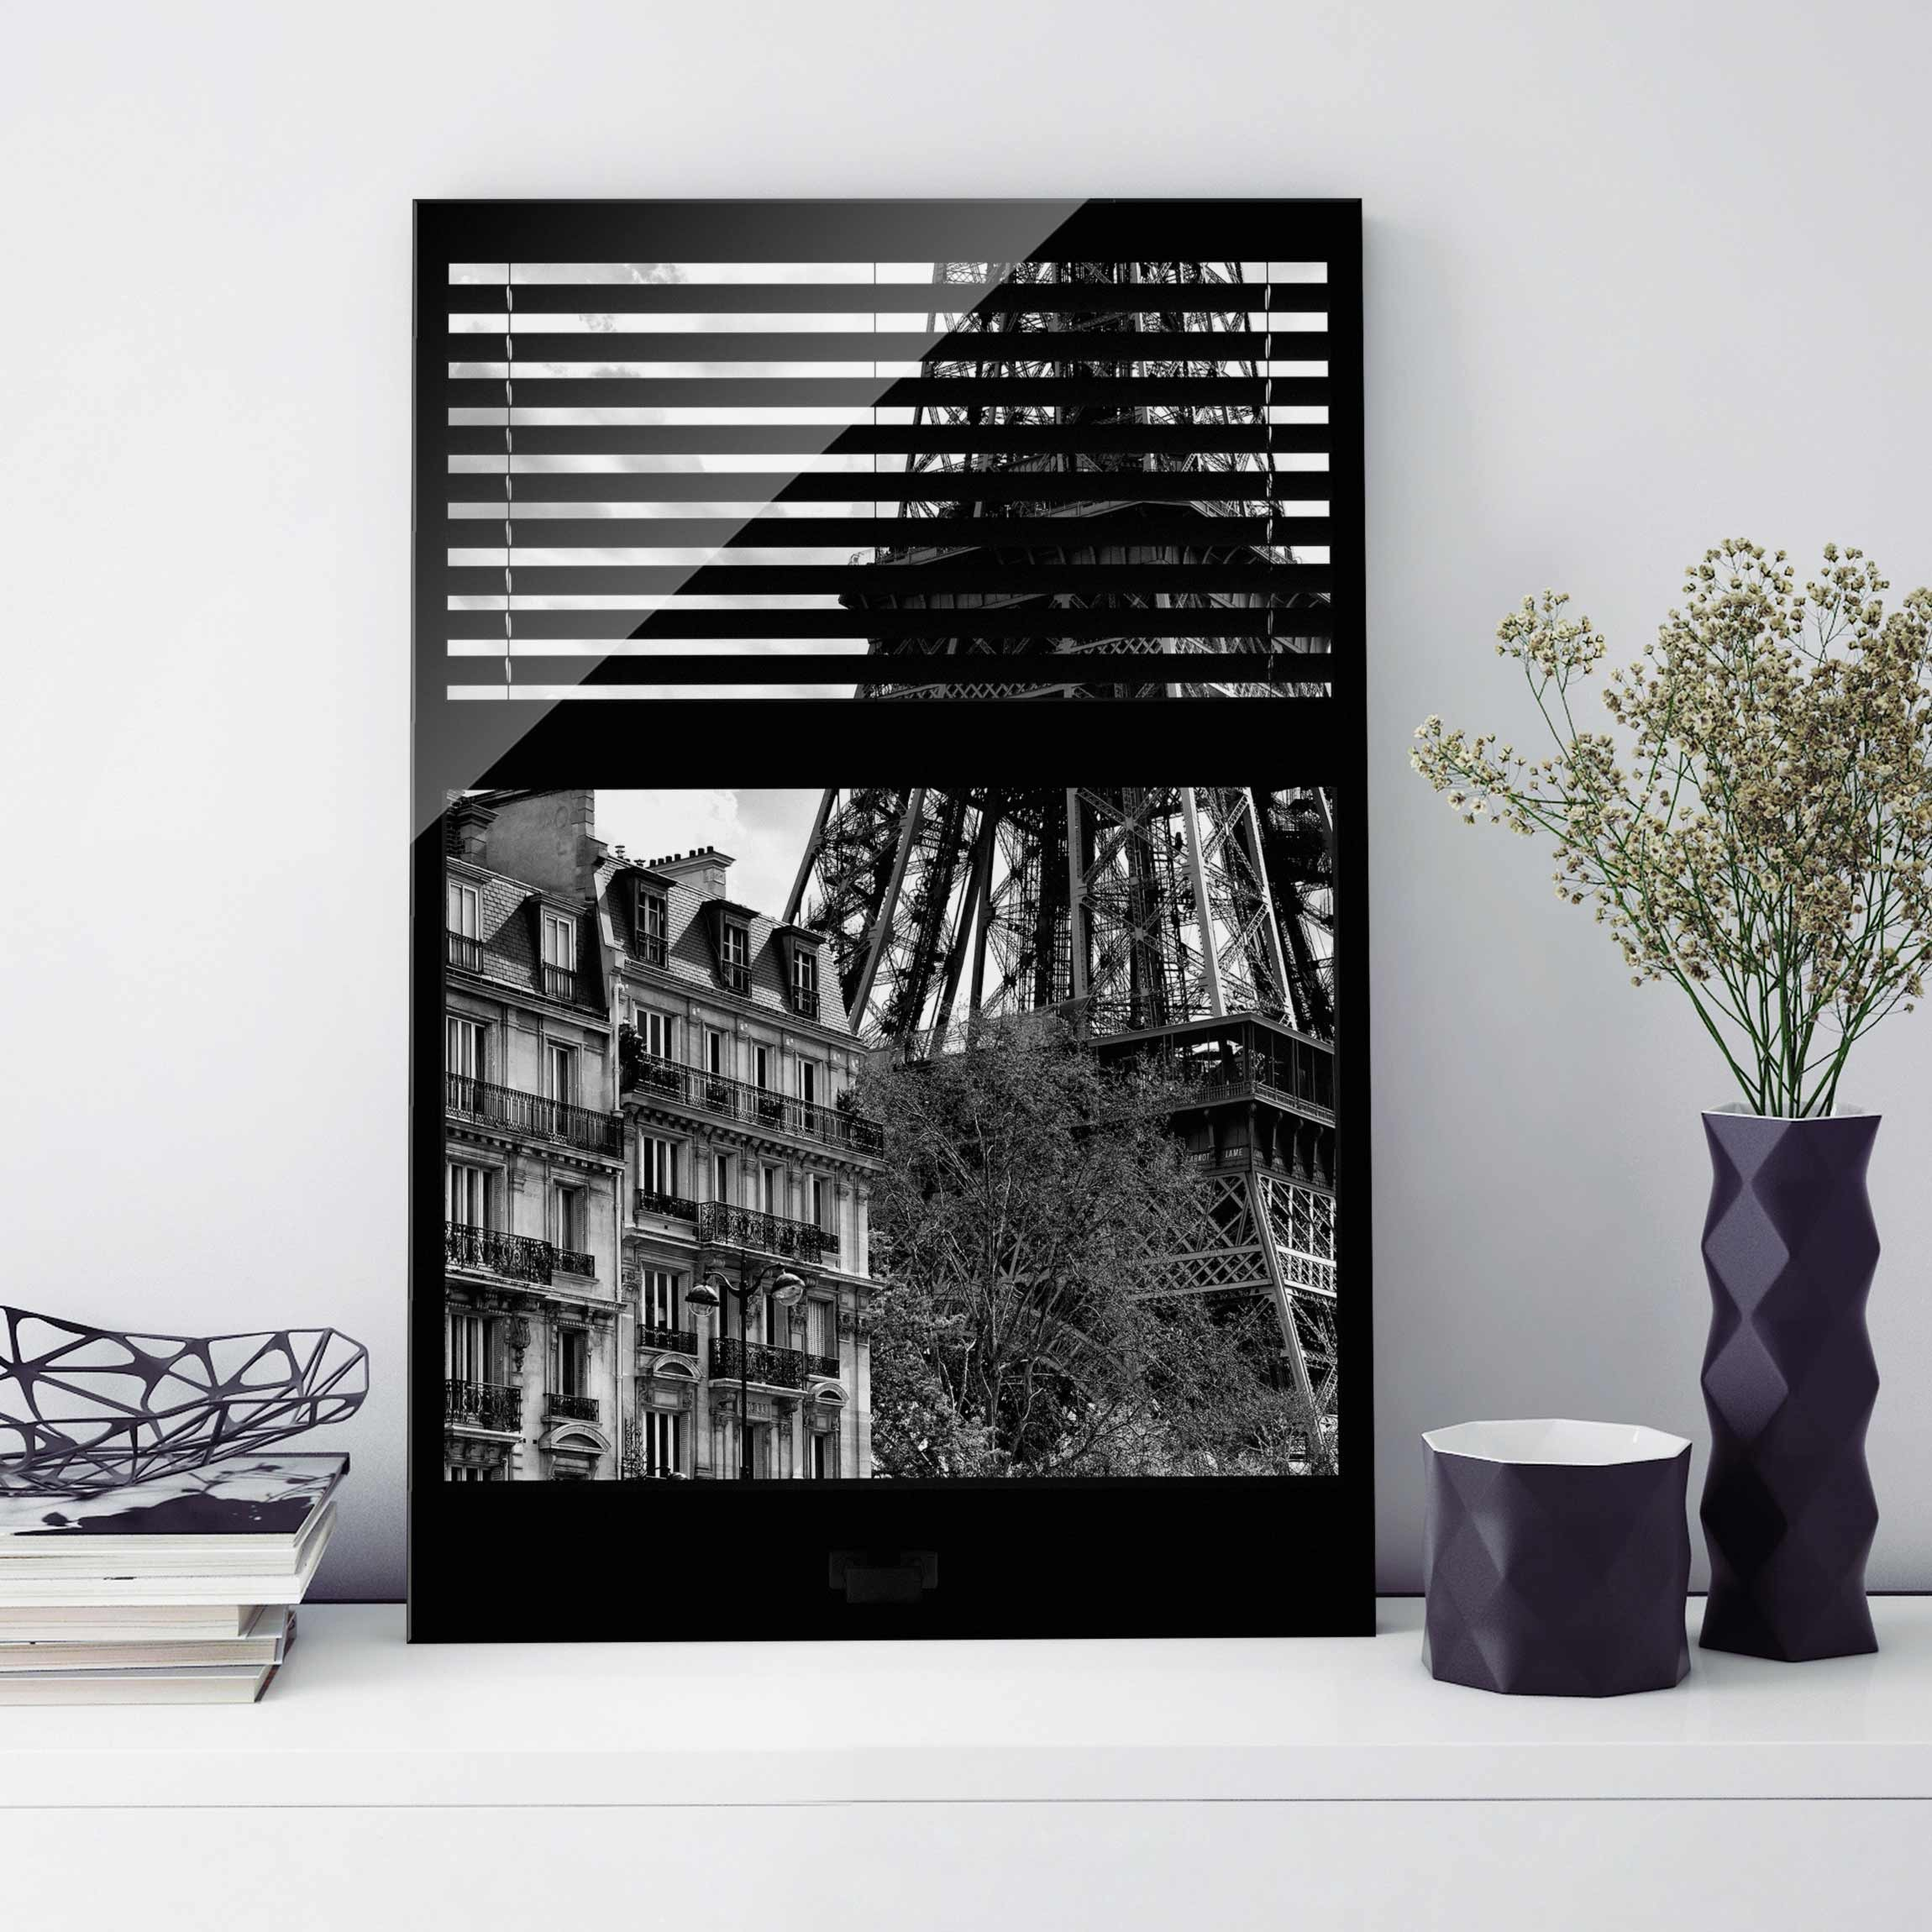 glasbild fensterausblick paris nahe am eiffelturm schwarz weiss hoch 3 2. Black Bedroom Furniture Sets. Home Design Ideas